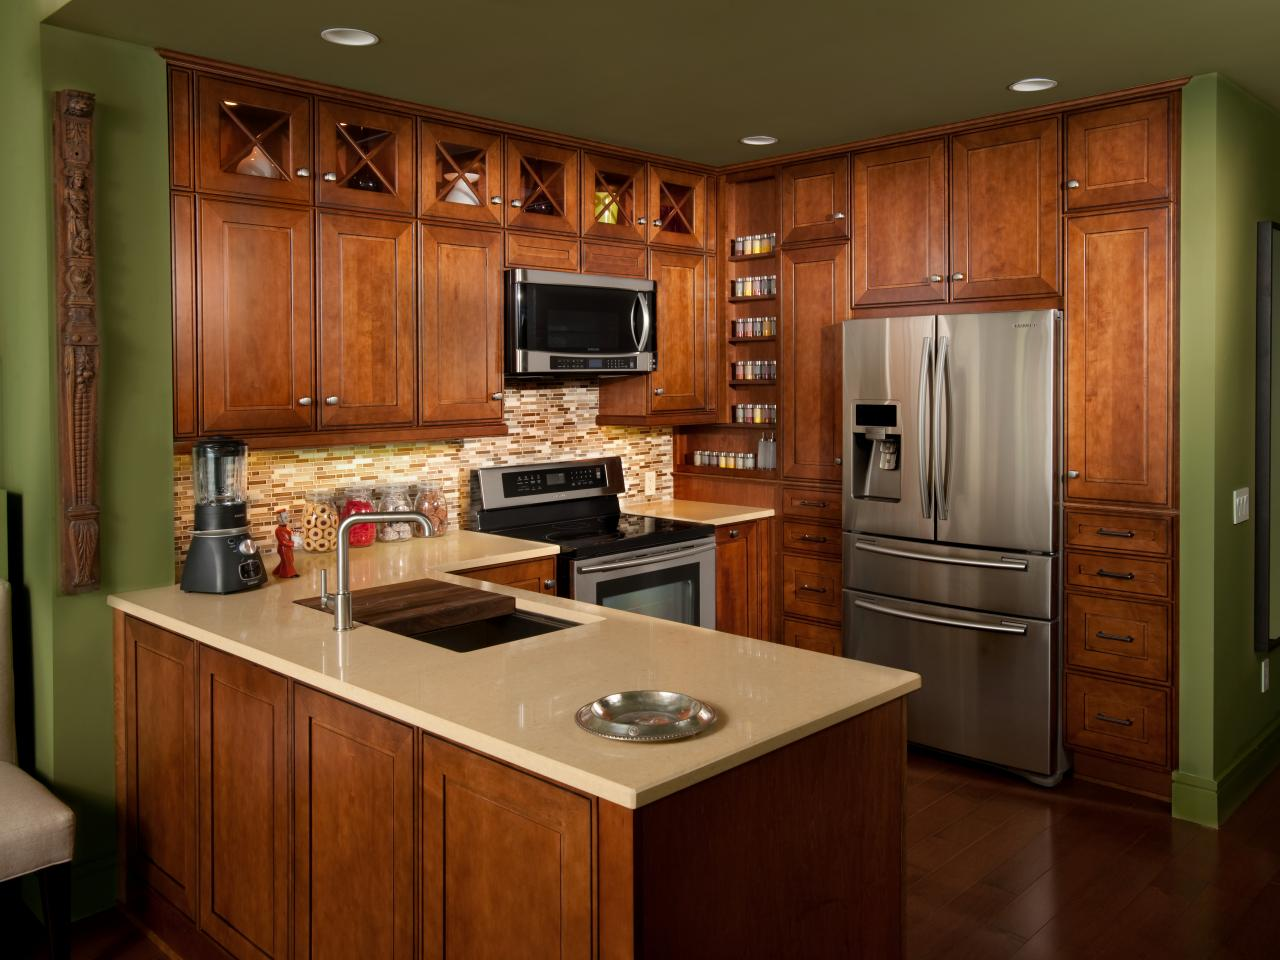 L shaped kitchen design pictures ideas tips from hgtv for Basic kitchen remodel ideas